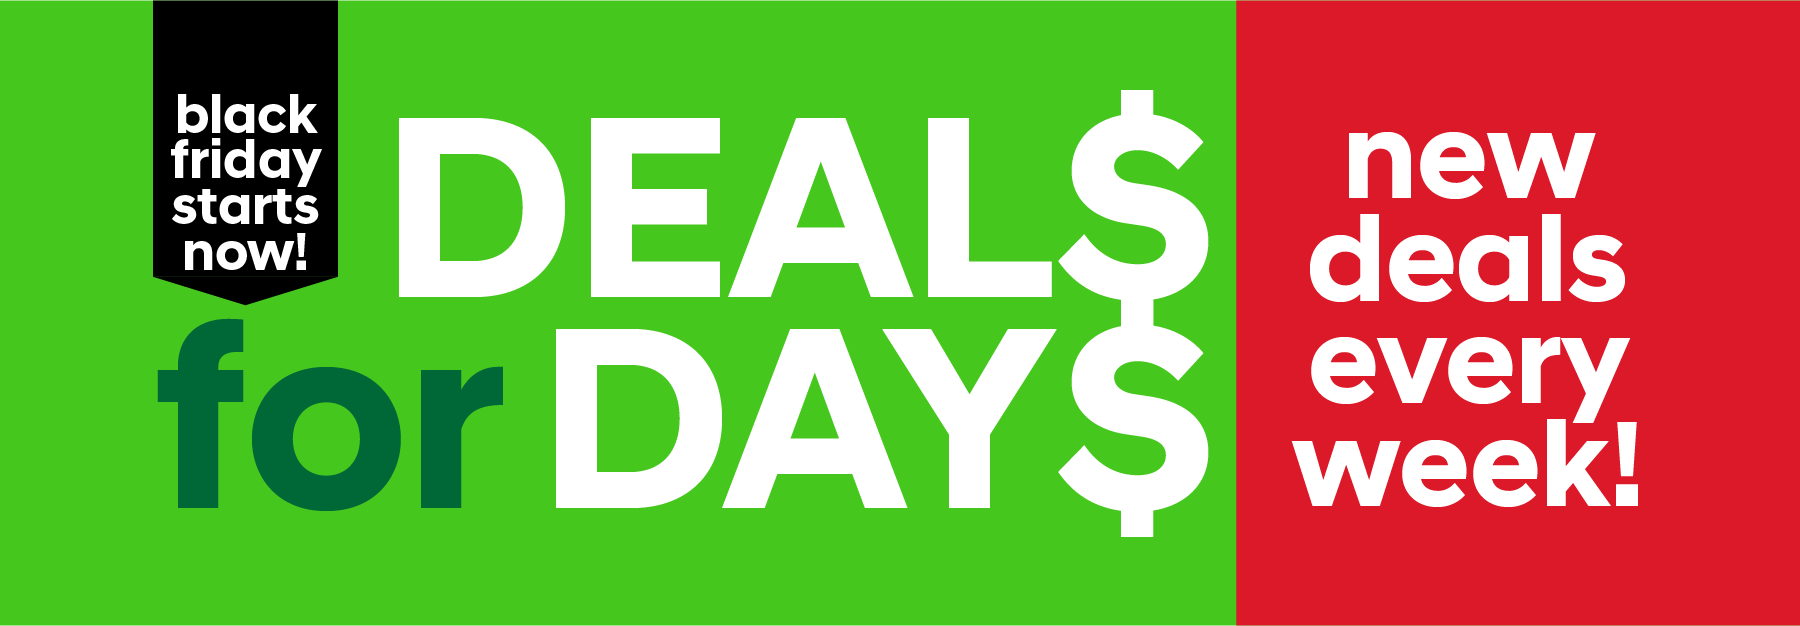 Deals for Days